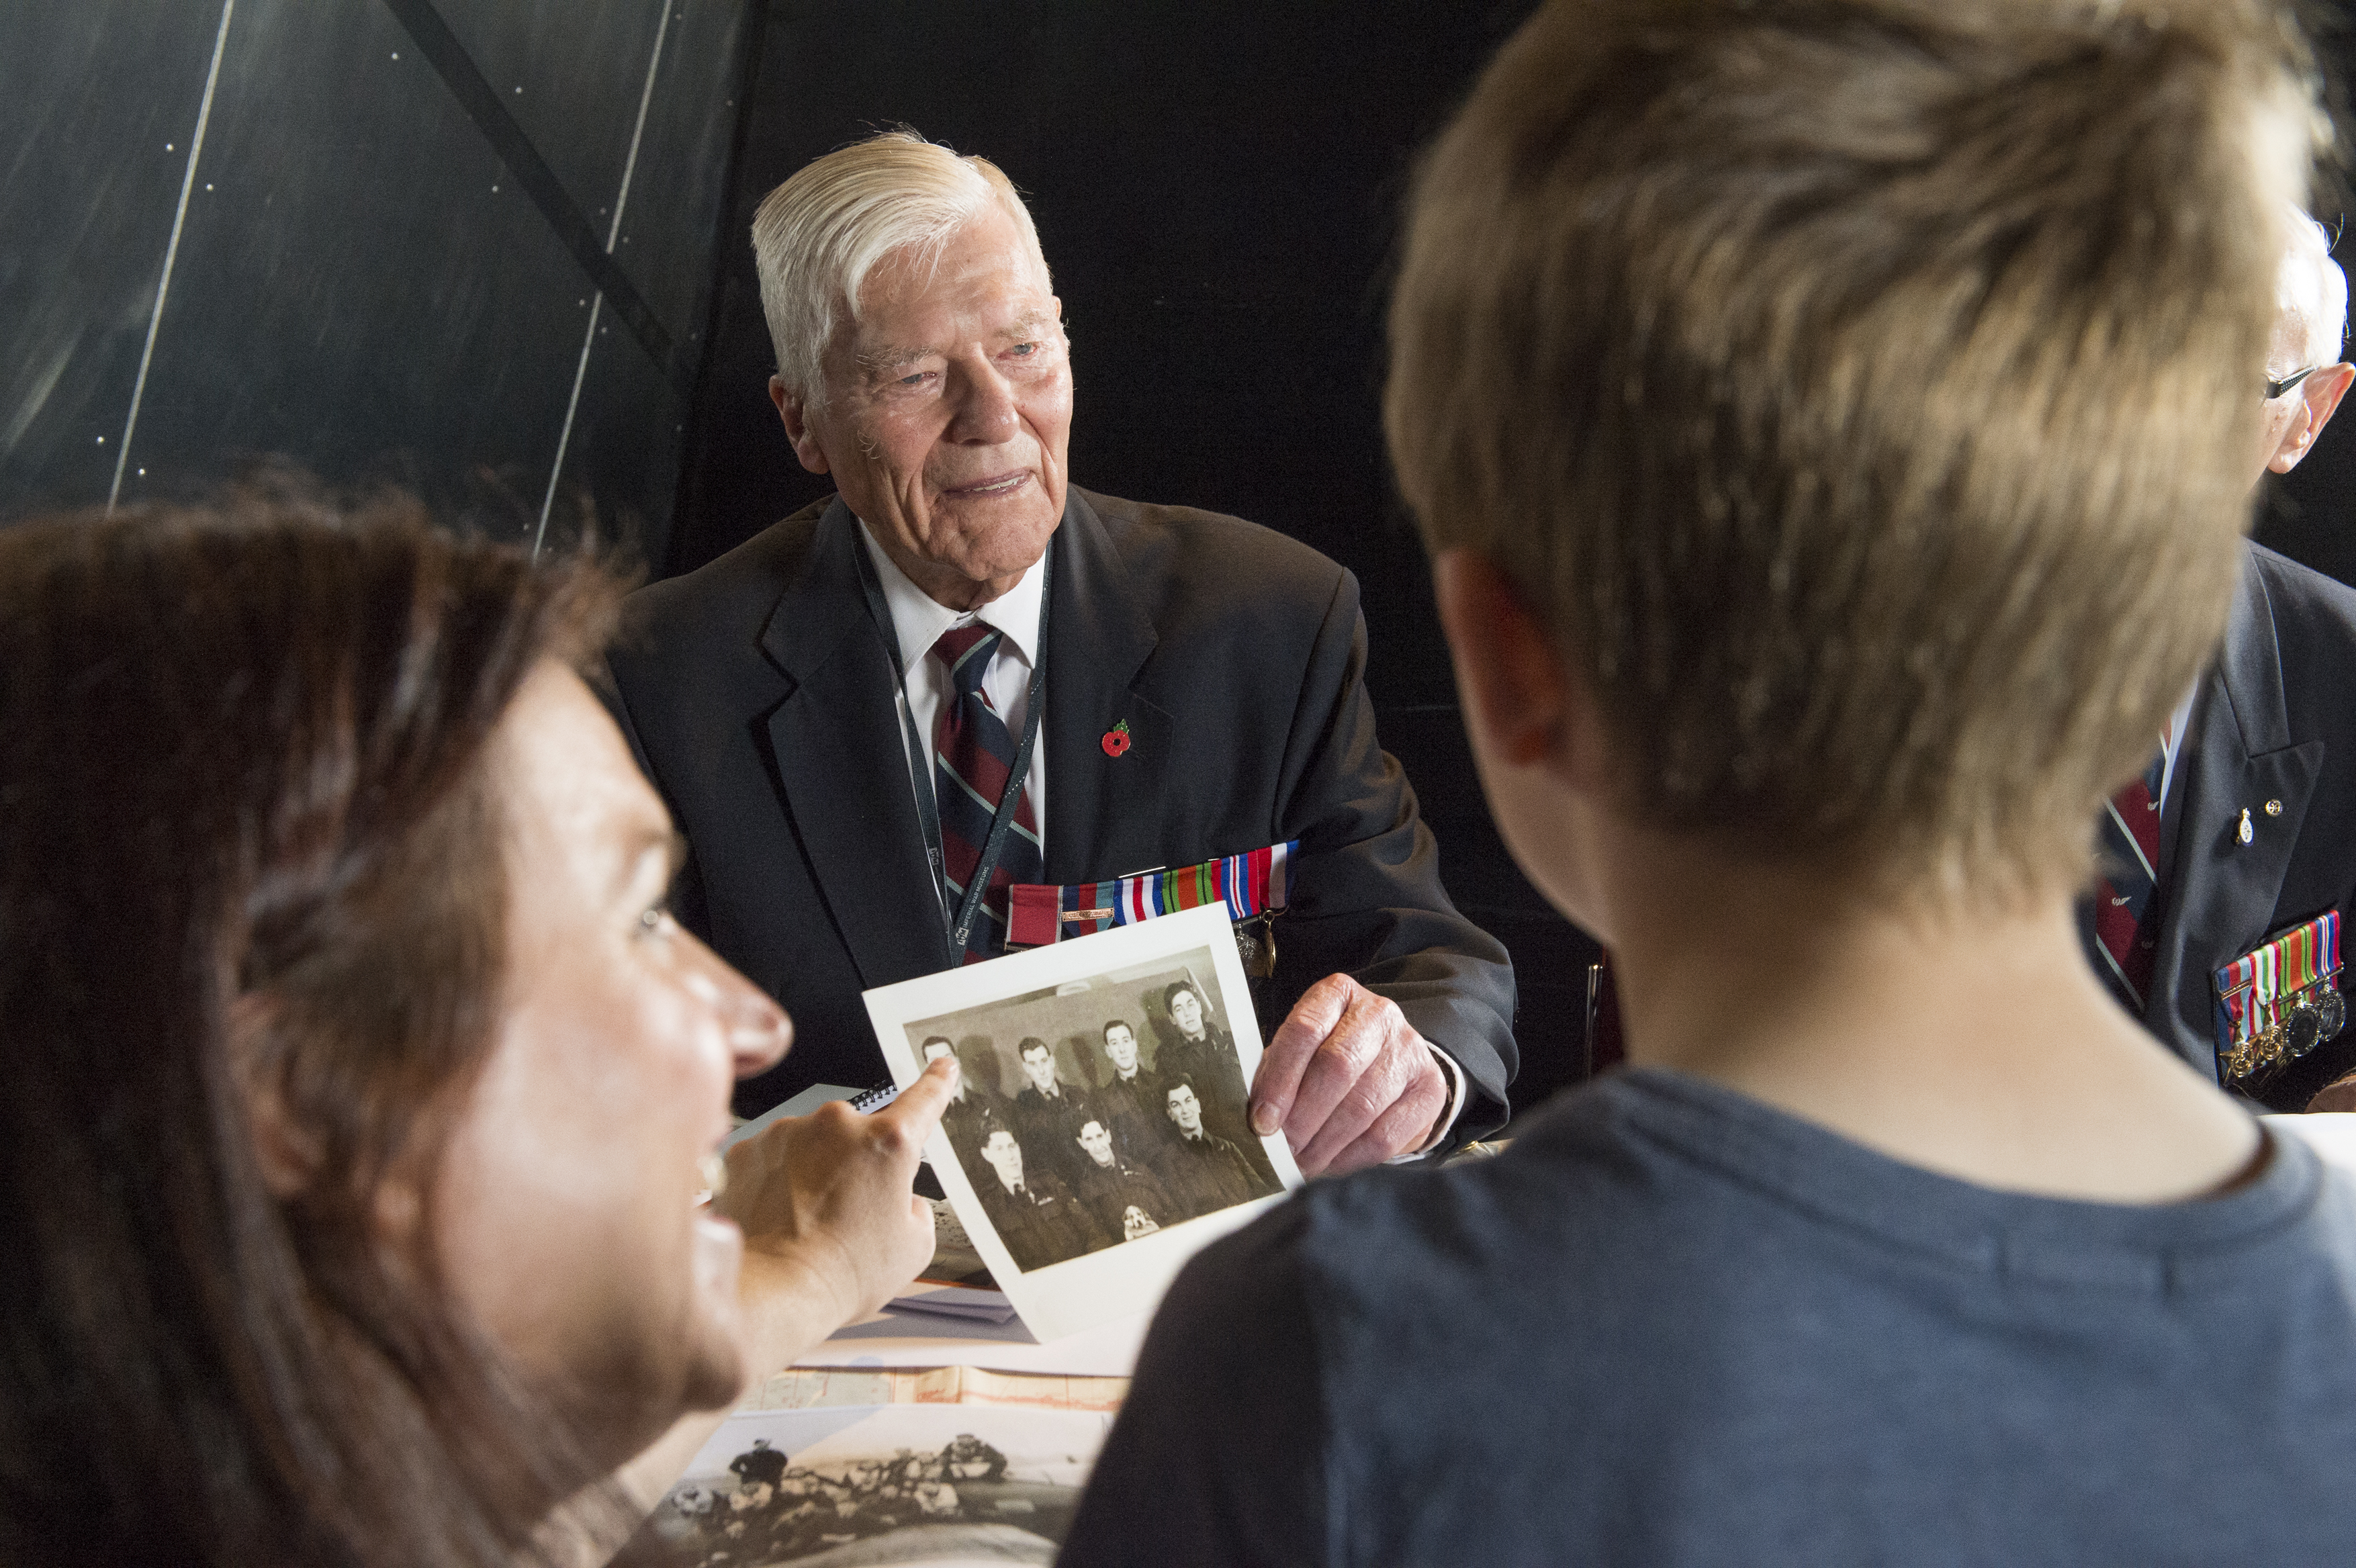 'Meet the Veterans' event at IWM North.